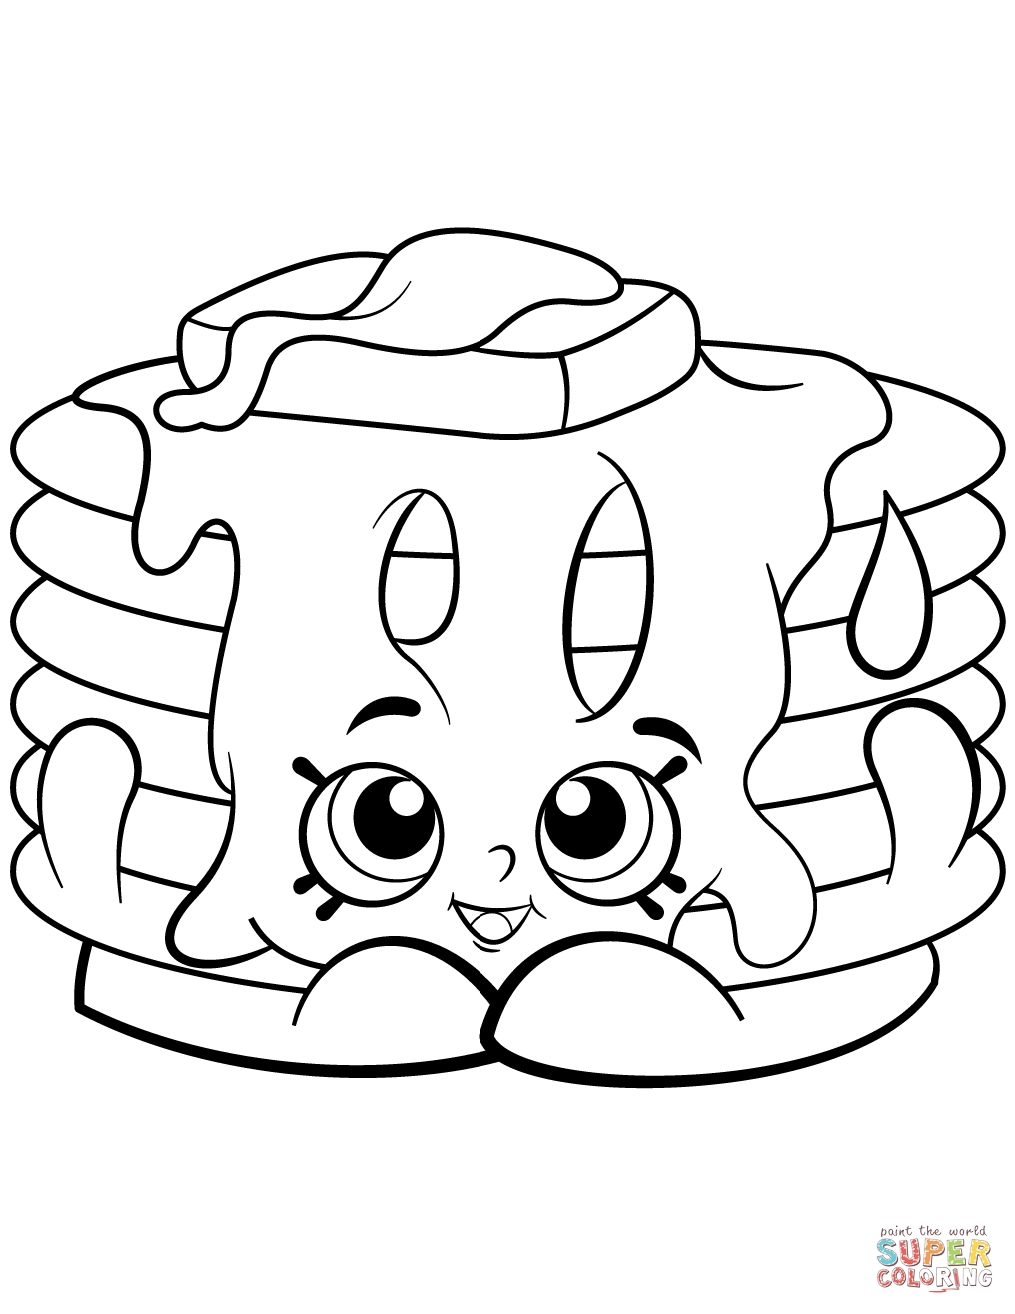 1015x1314 Shopkins Ice Cream Dream Coloring Pages Download